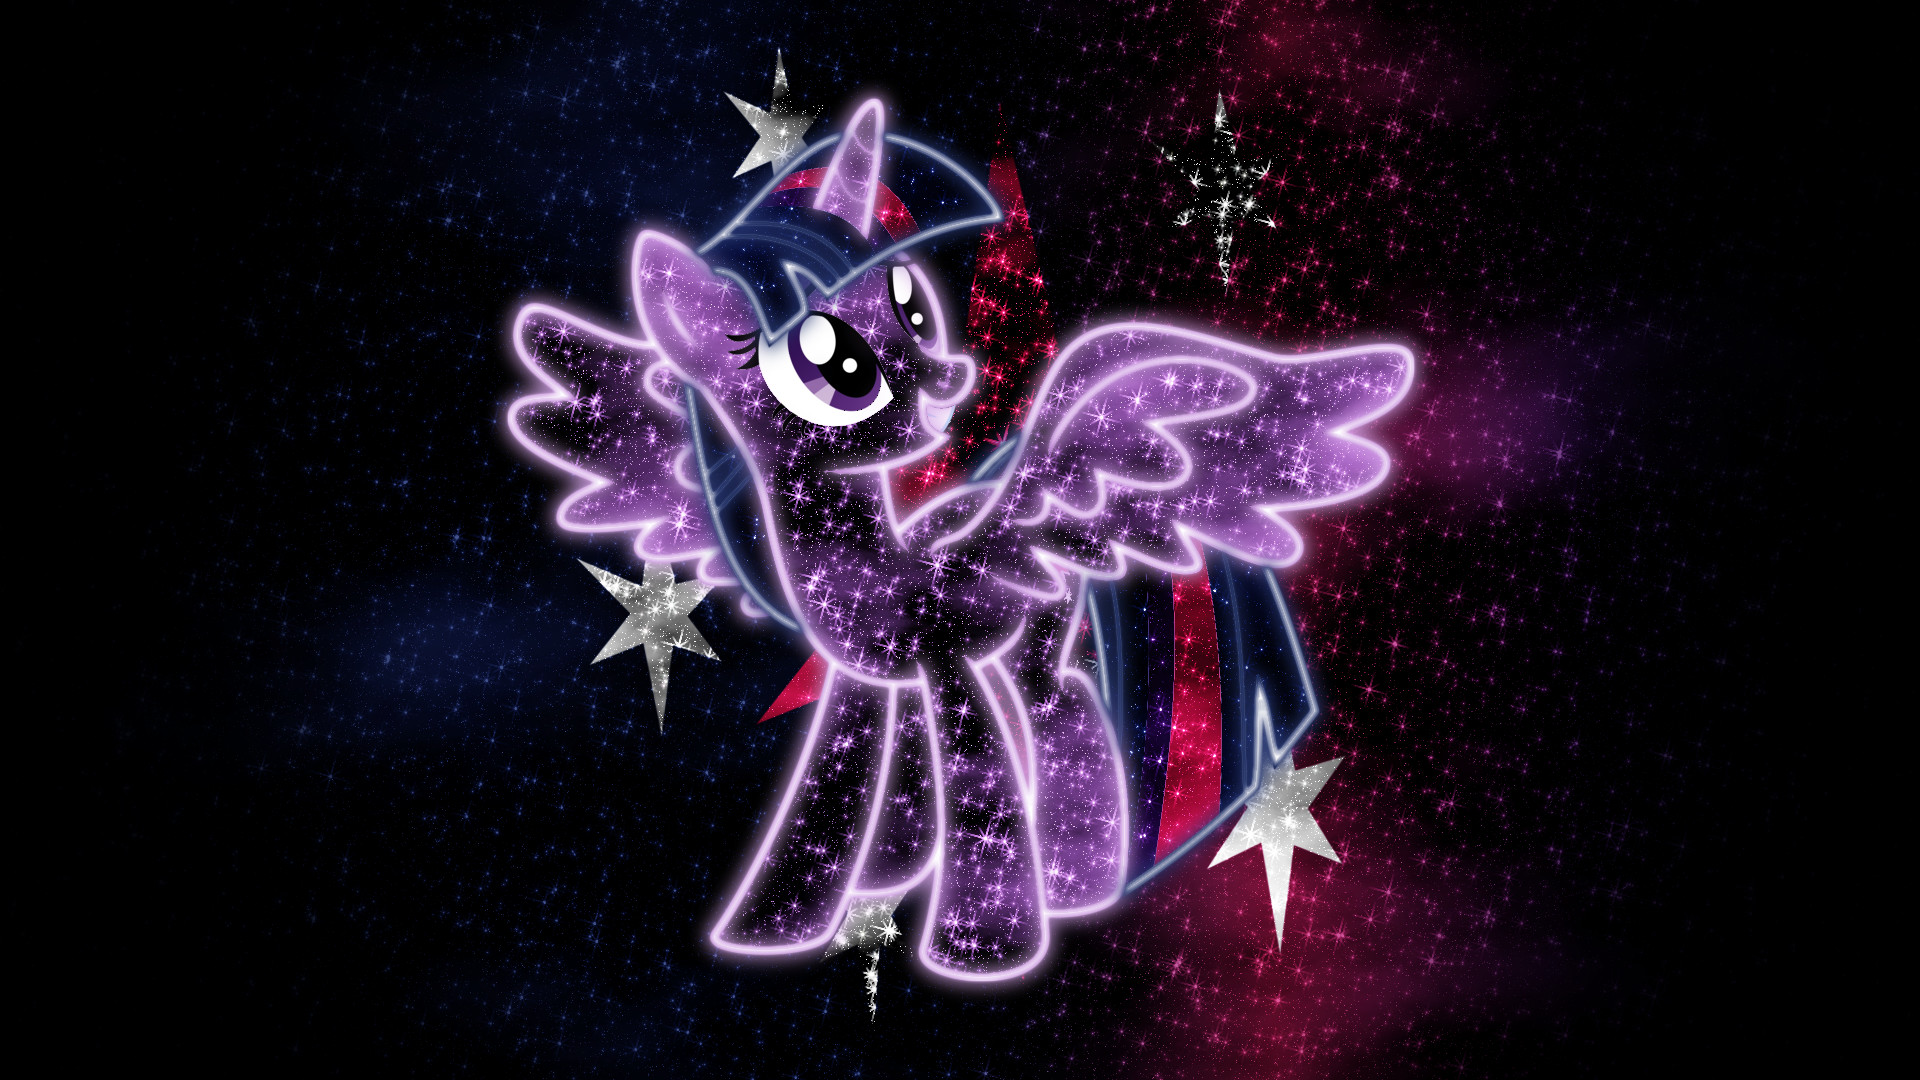 Princess Twilight Sparkle Wallpaper 85 Images